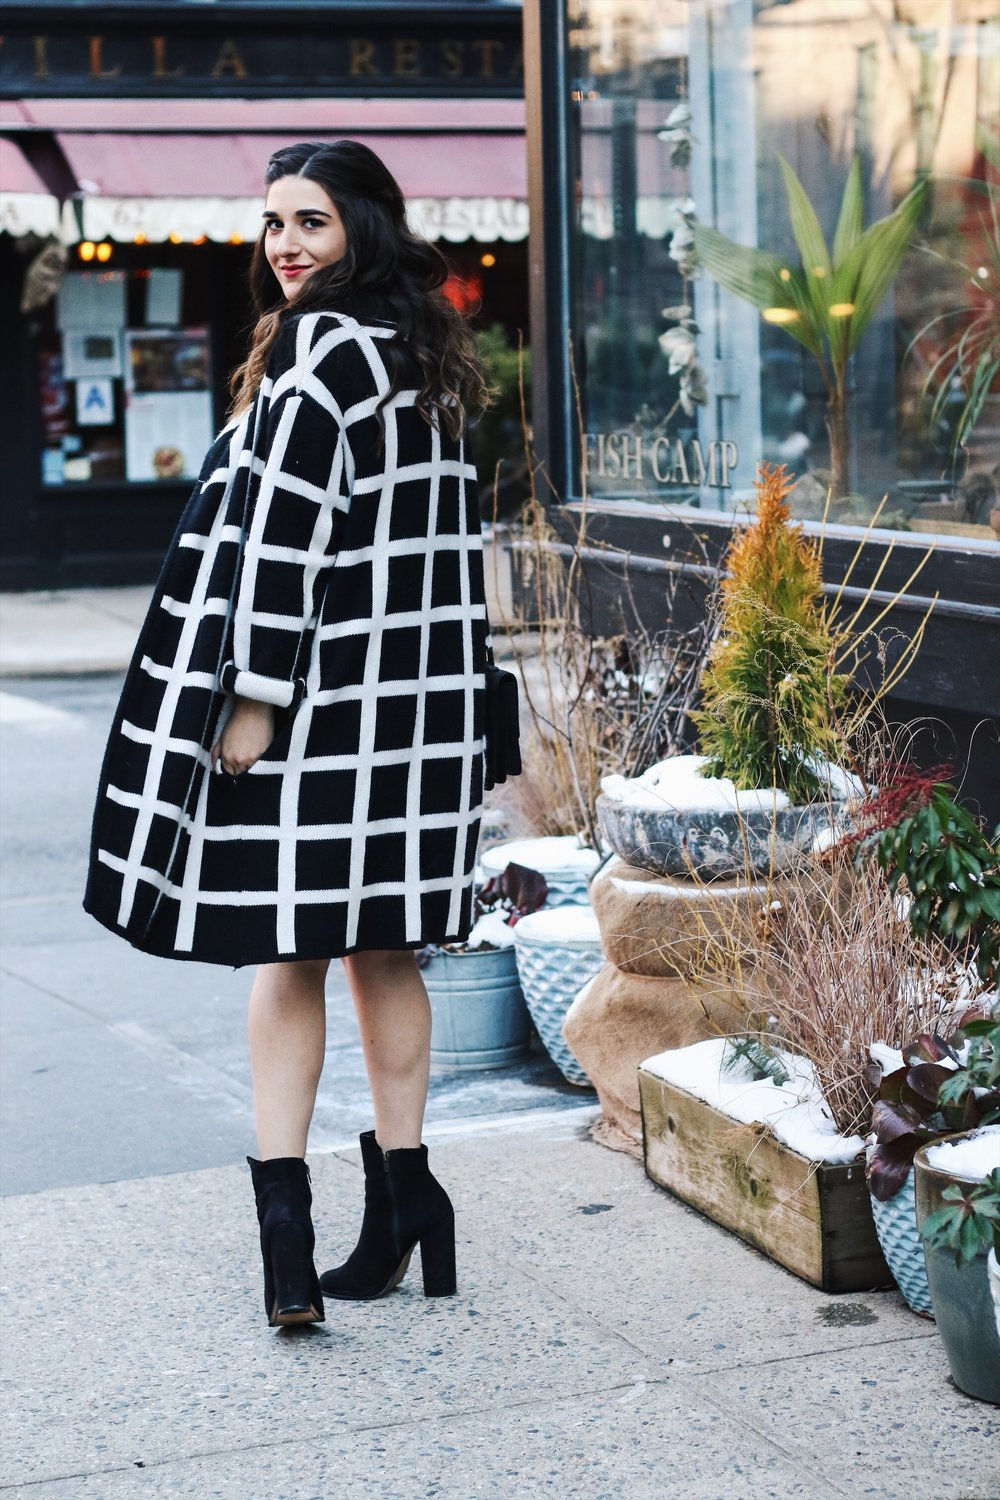 Slip Dress Oversized Cardigan The Job That Got Away Esther Santer Fashion Blog NYC Street Style Blogger Outfit OOTD Trendy Blue Black White Girl Women Bag Purse Henri Bendel Shop Buy Shoes Ankle Boots Winter Inspo Wearing Hair Layers Photoshoot Beauty.JPG